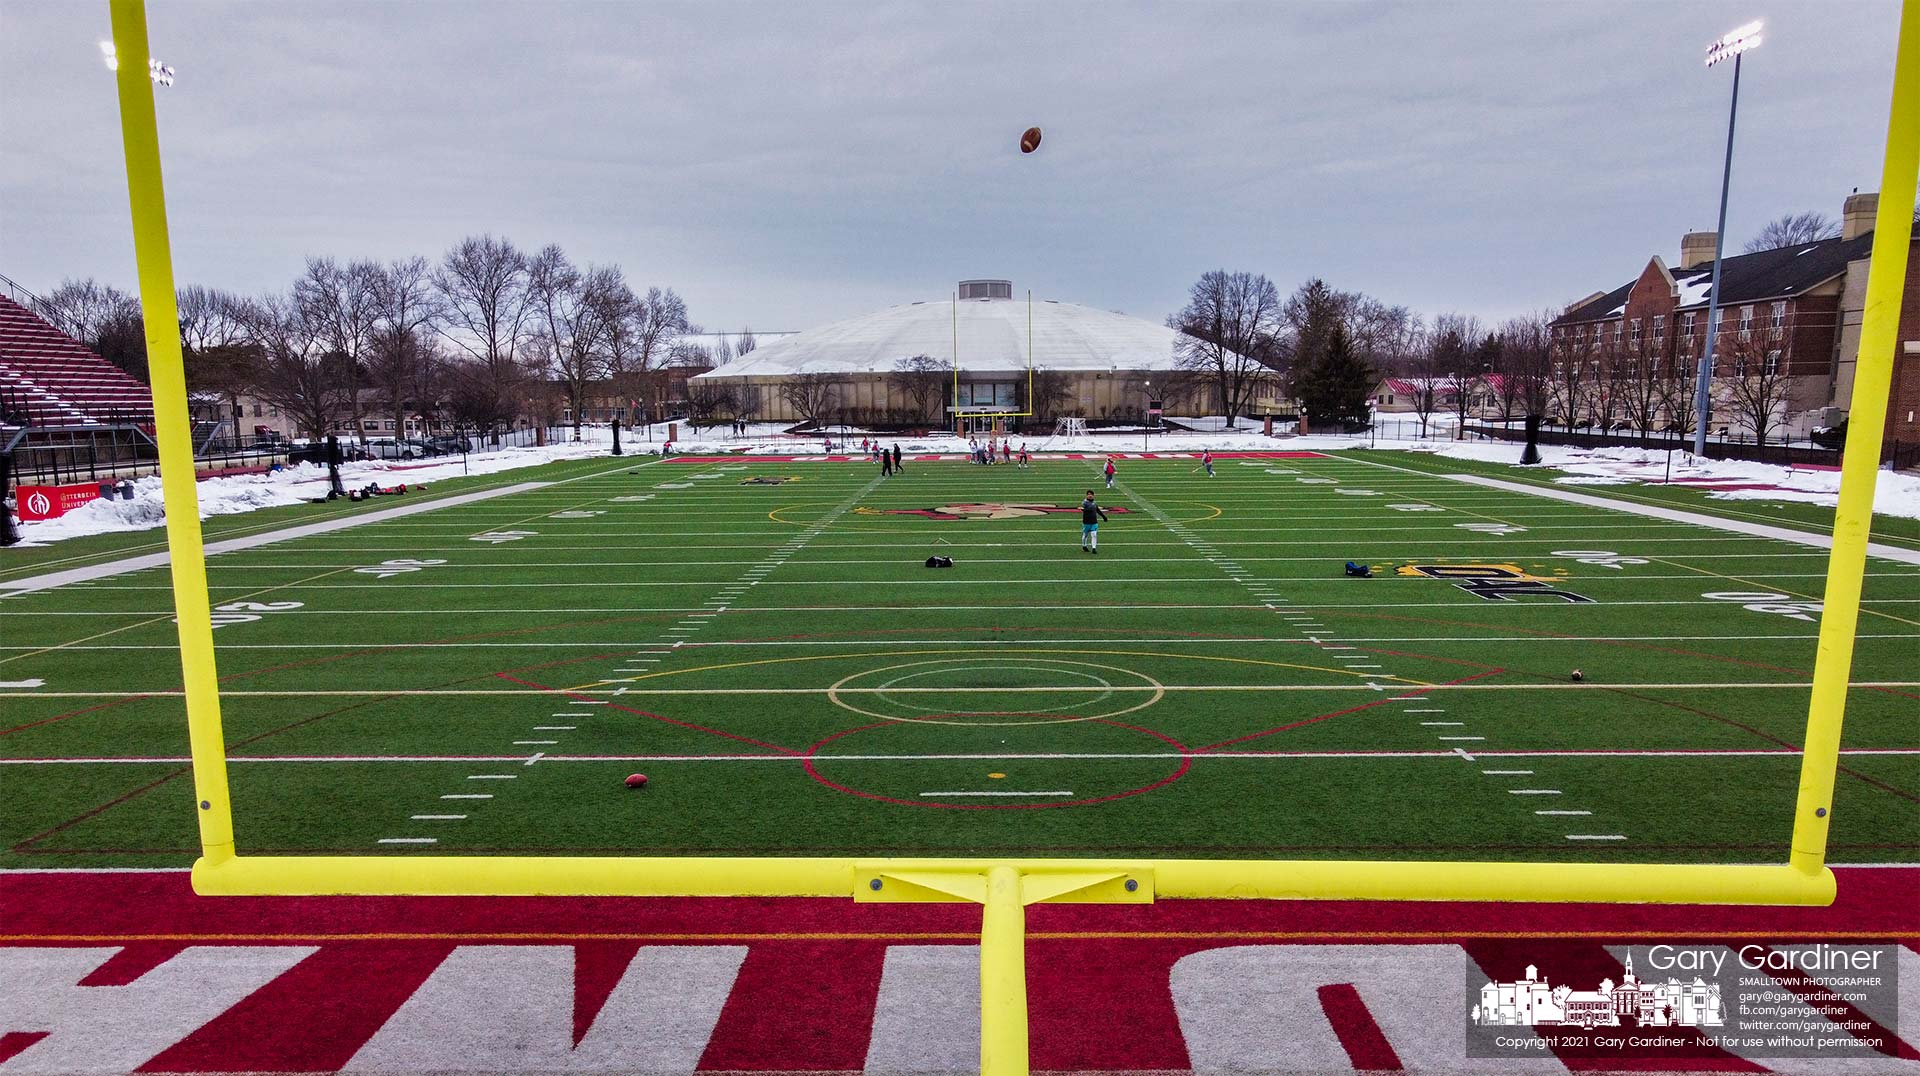 A kicker practices his skills during lacrosse practice at the Otterbein University football stadium. My Final Photo for Feb. 8, 2021.